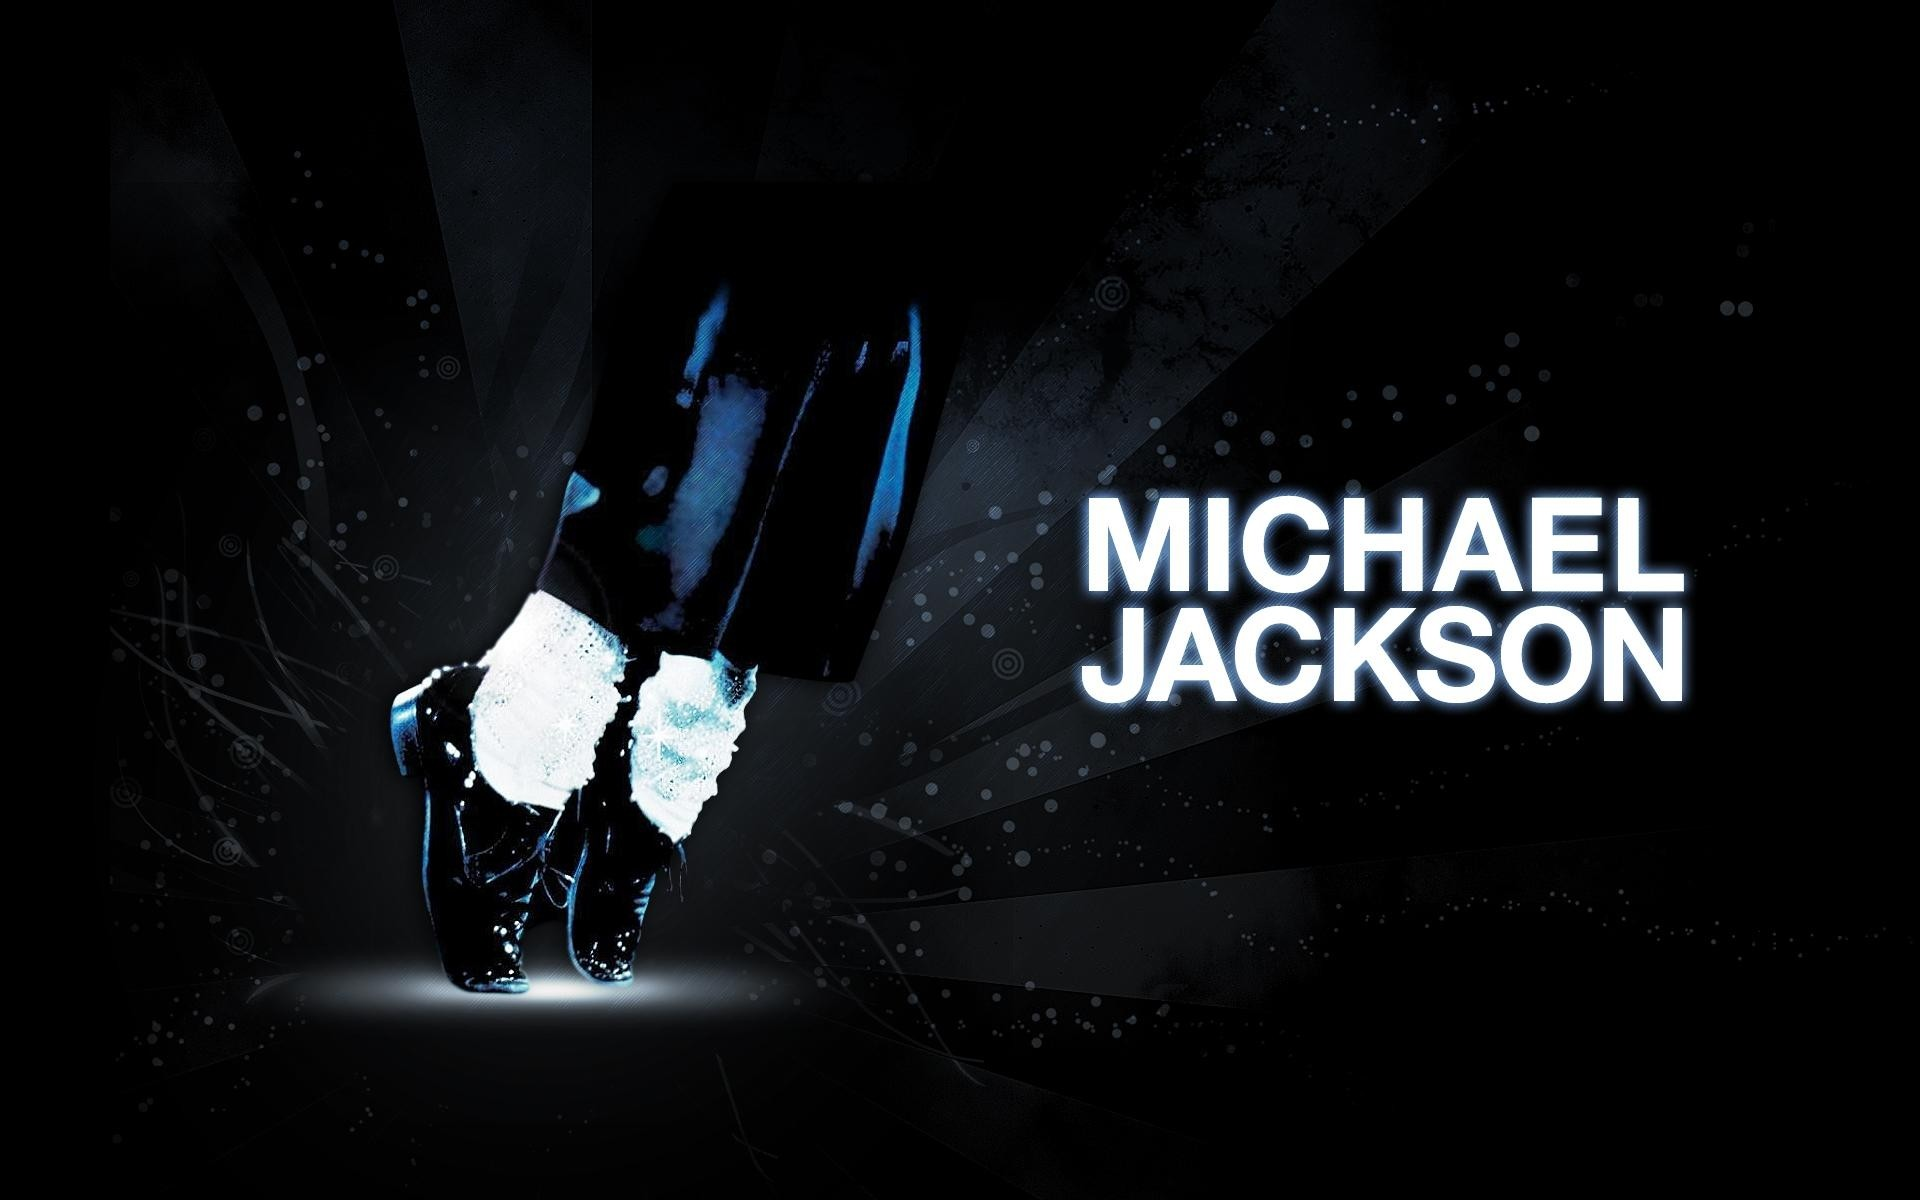 1920x1200 Wallpaper Michael jackson, Shoes, Socks, Pants, Light